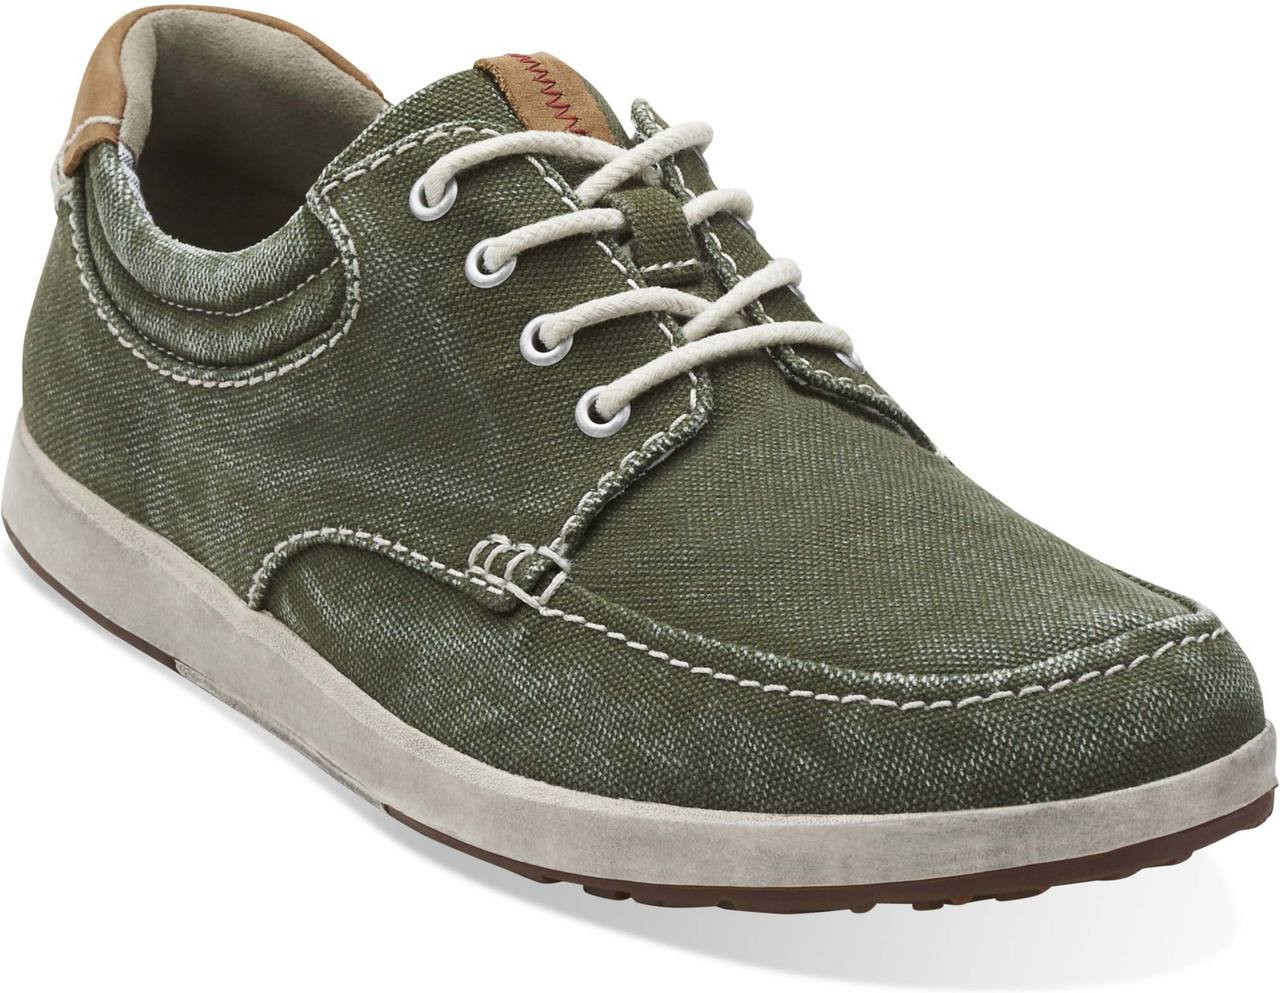 Clarks Norwin Vibe- Green sneakers